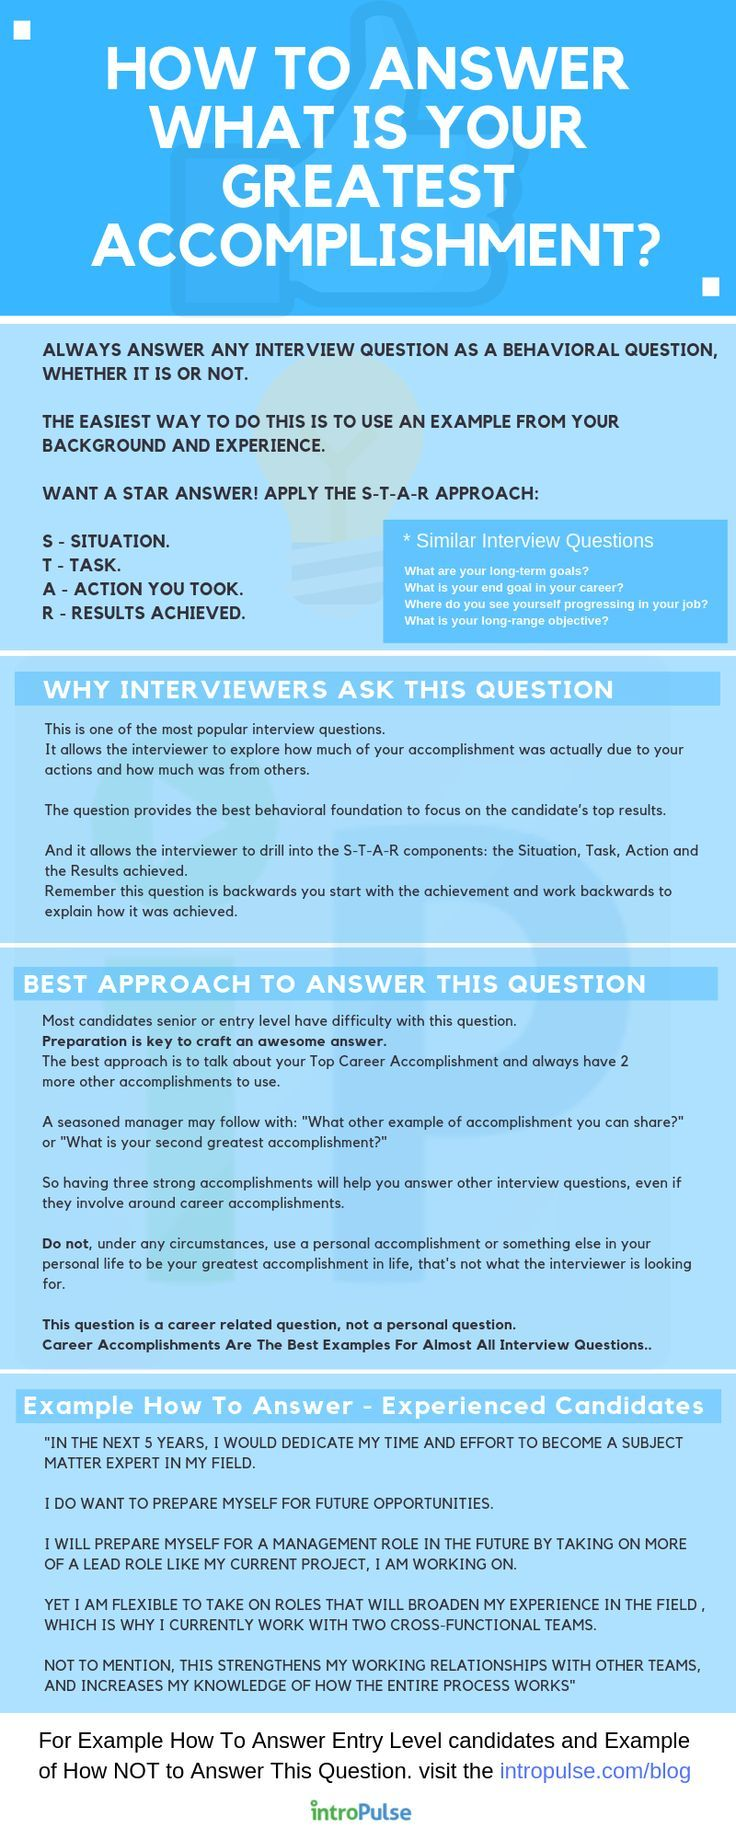 Infographic How To Answer Job Interview Question What Is Your Greatest Accomplishment Job Interview Job Interview Advice Job Interview Tips